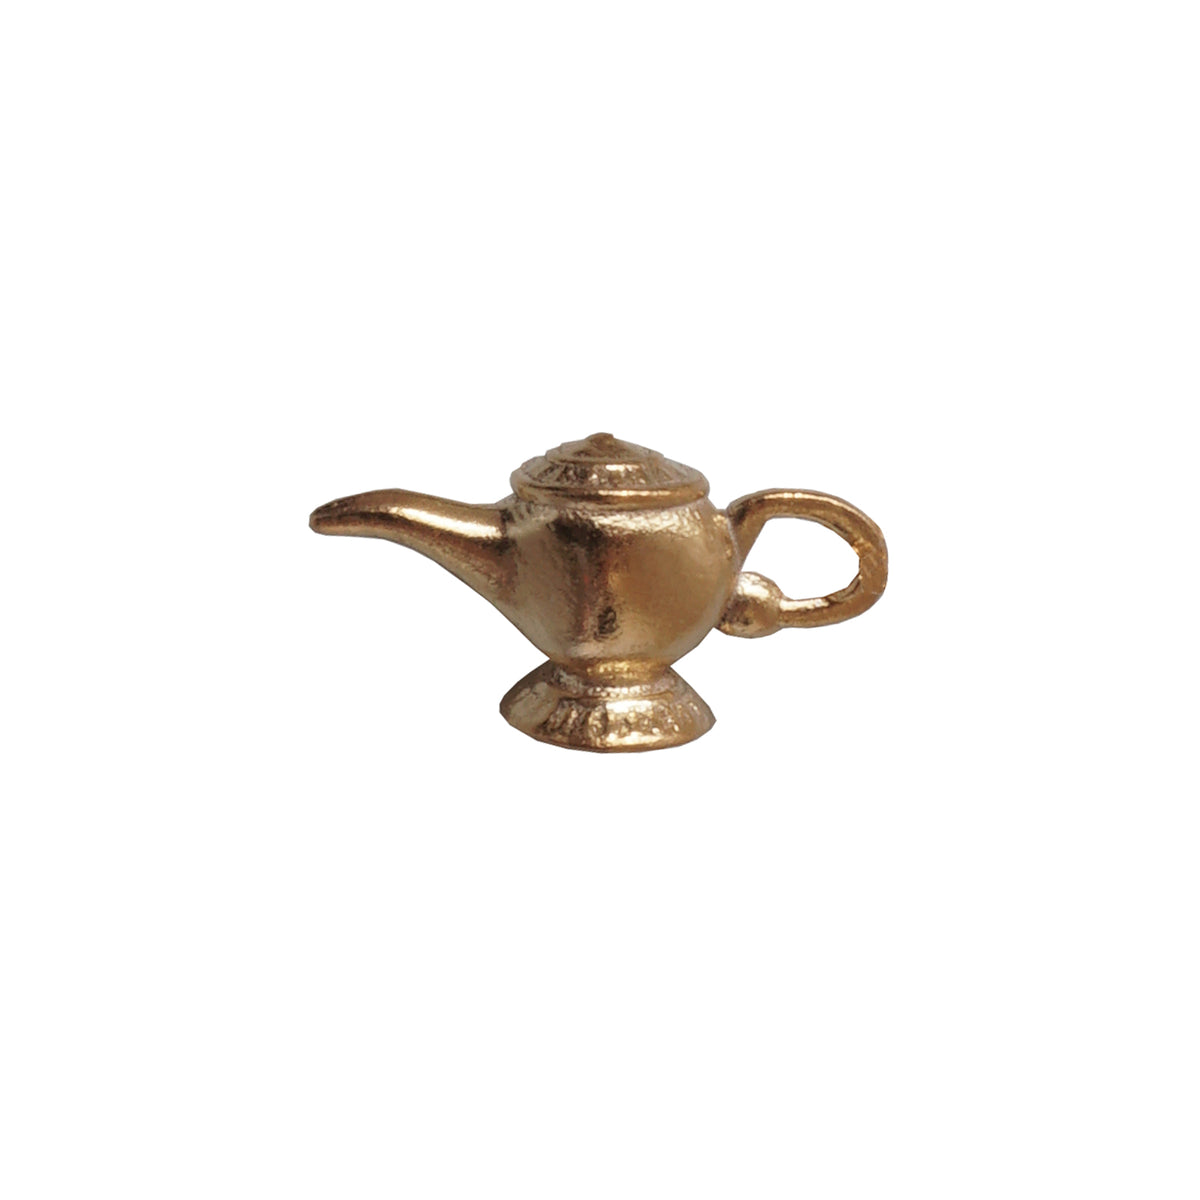 Genie Lamp Bottle Charm